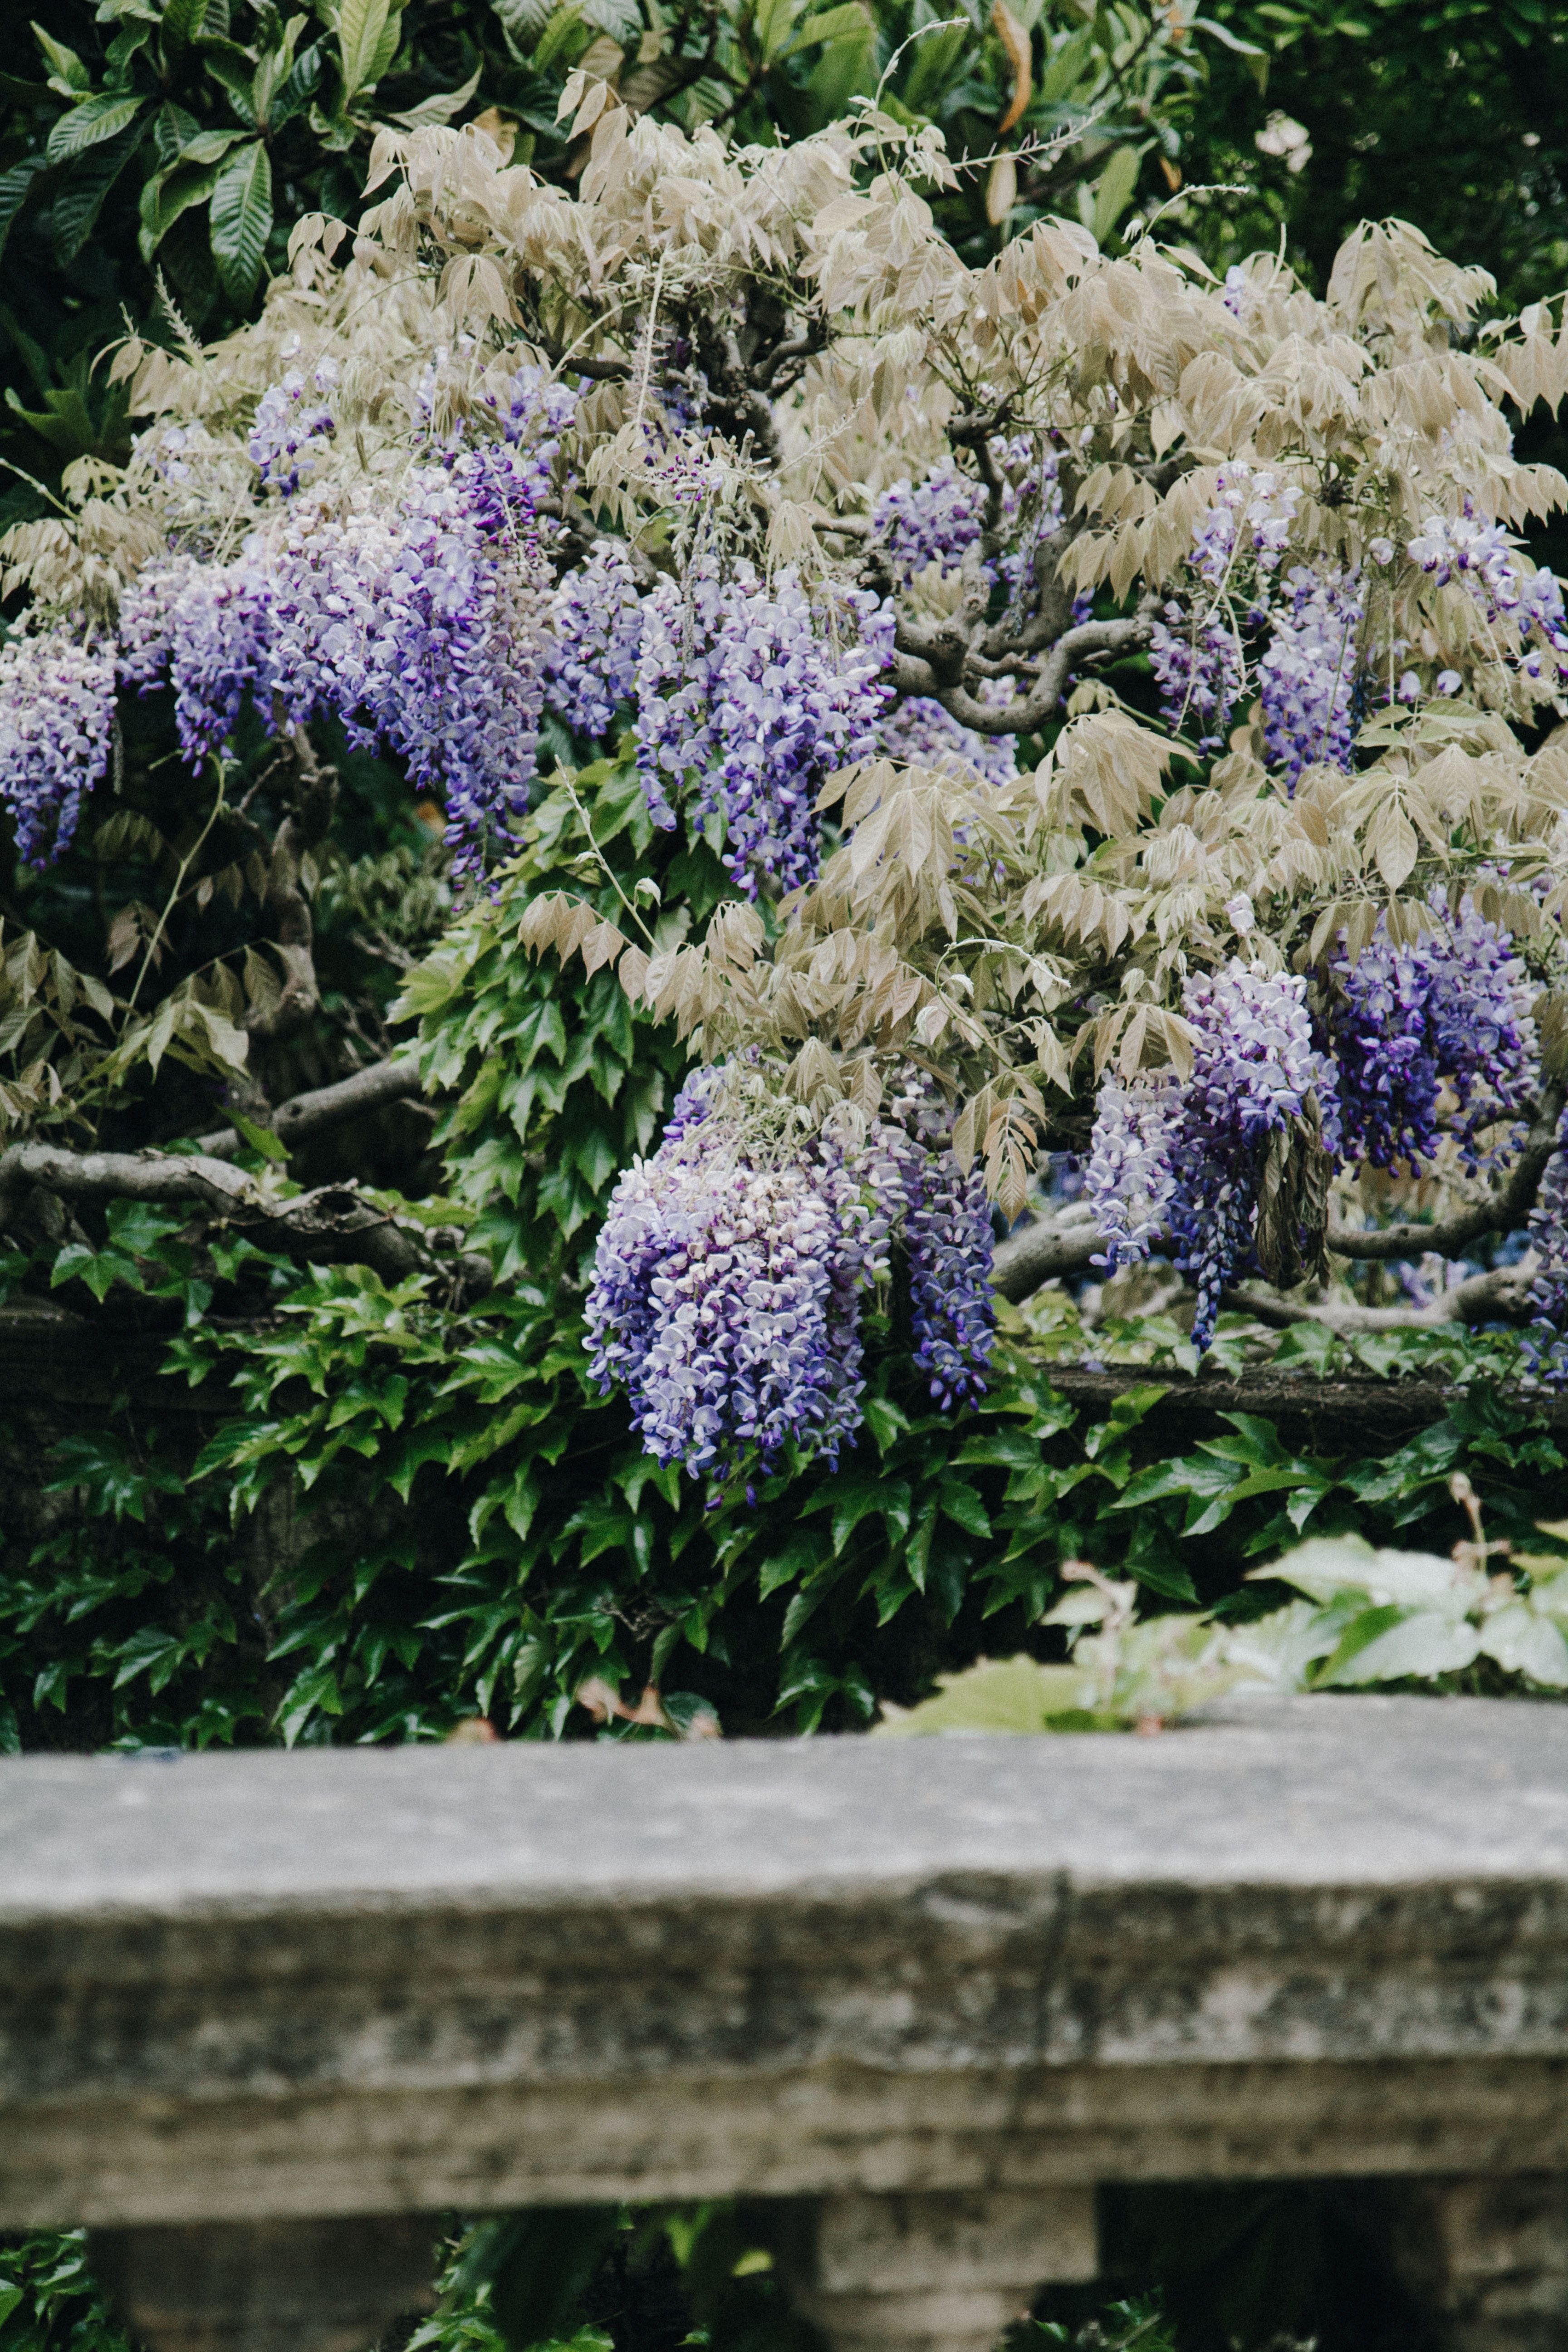 photo of white and purple flowers